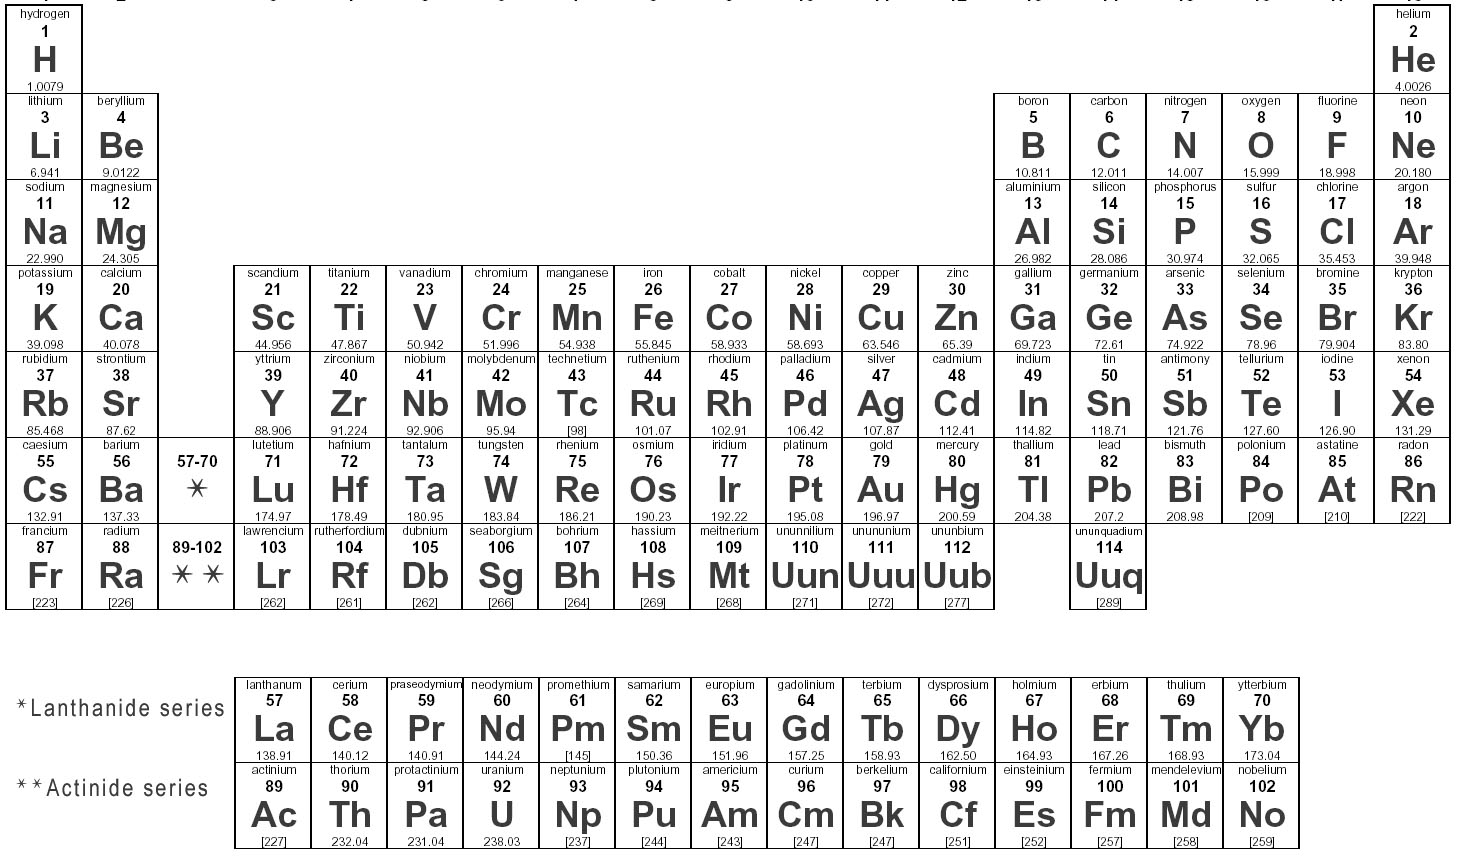 Aditya pristyharis blog fun fact about periodic table the only letter not appearing on the periodic table is the letter j do you believe look at this urtaz Image collections